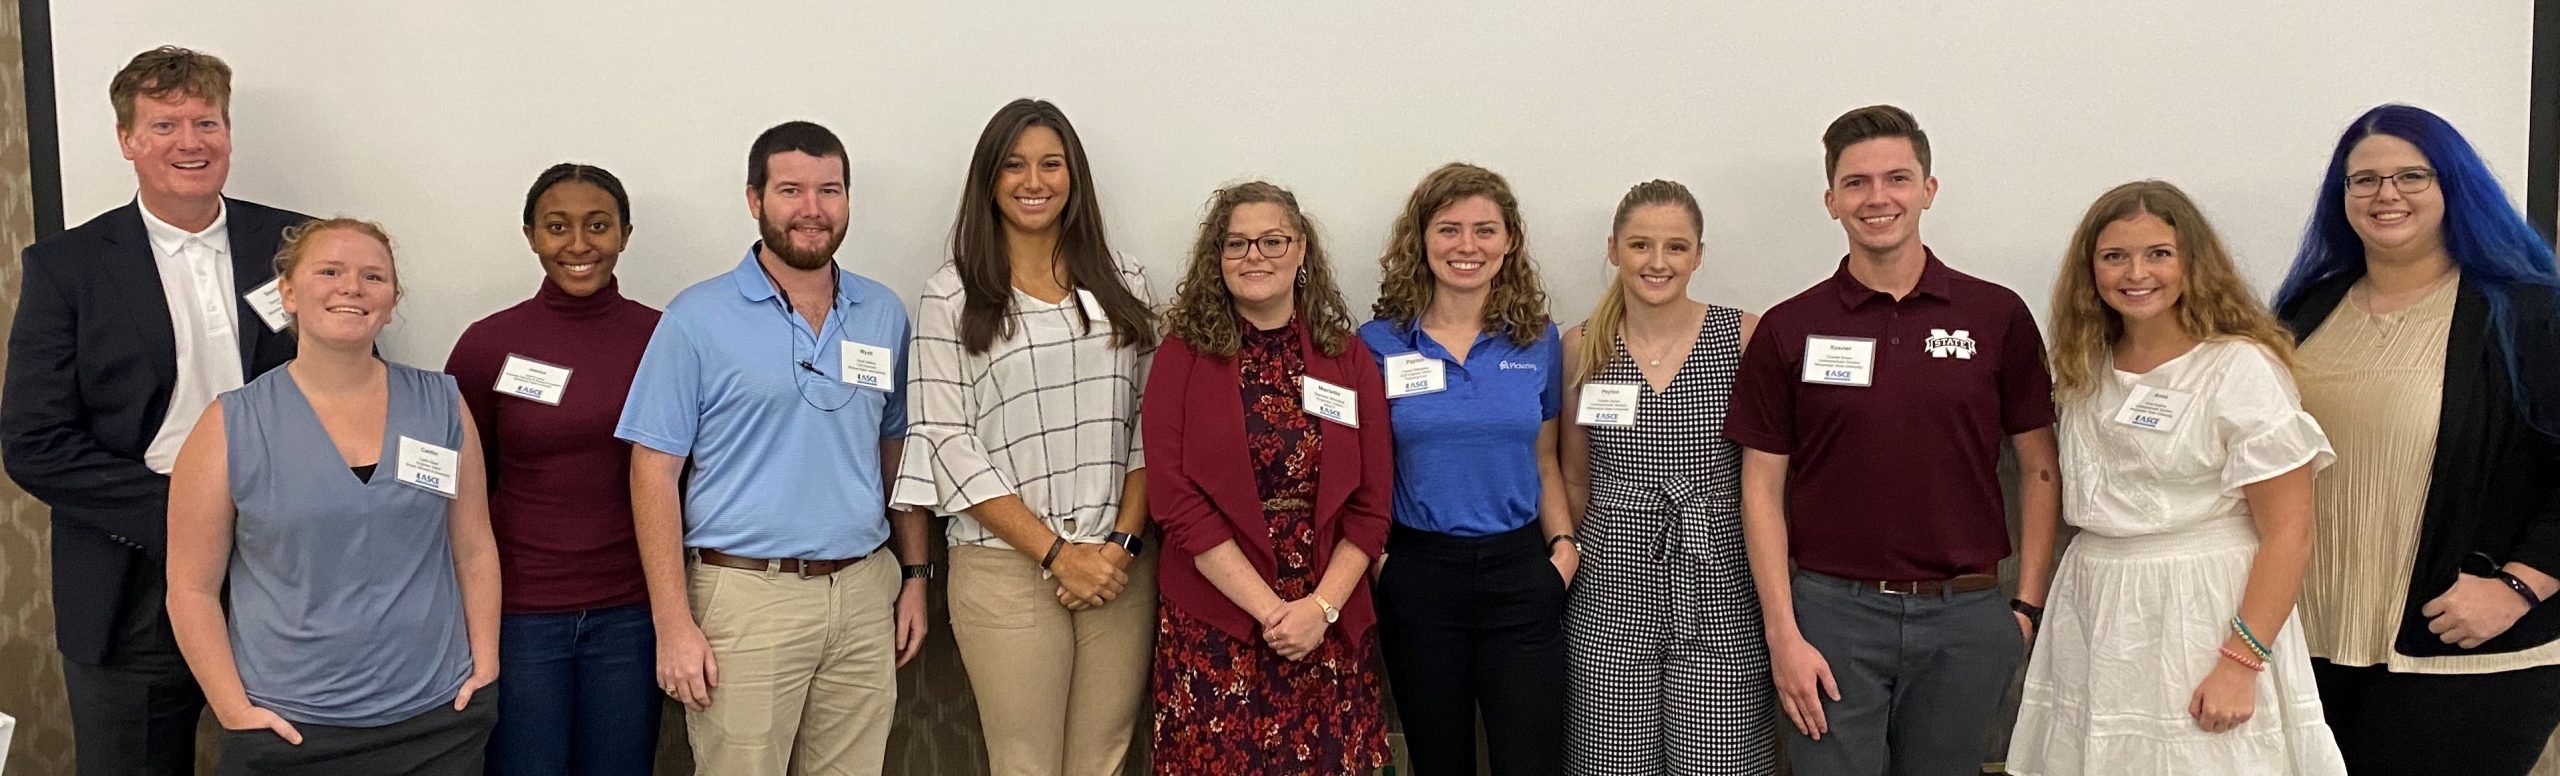 (2021) ASCE Mississippi Section Annual Meeting – Gulfport, MS